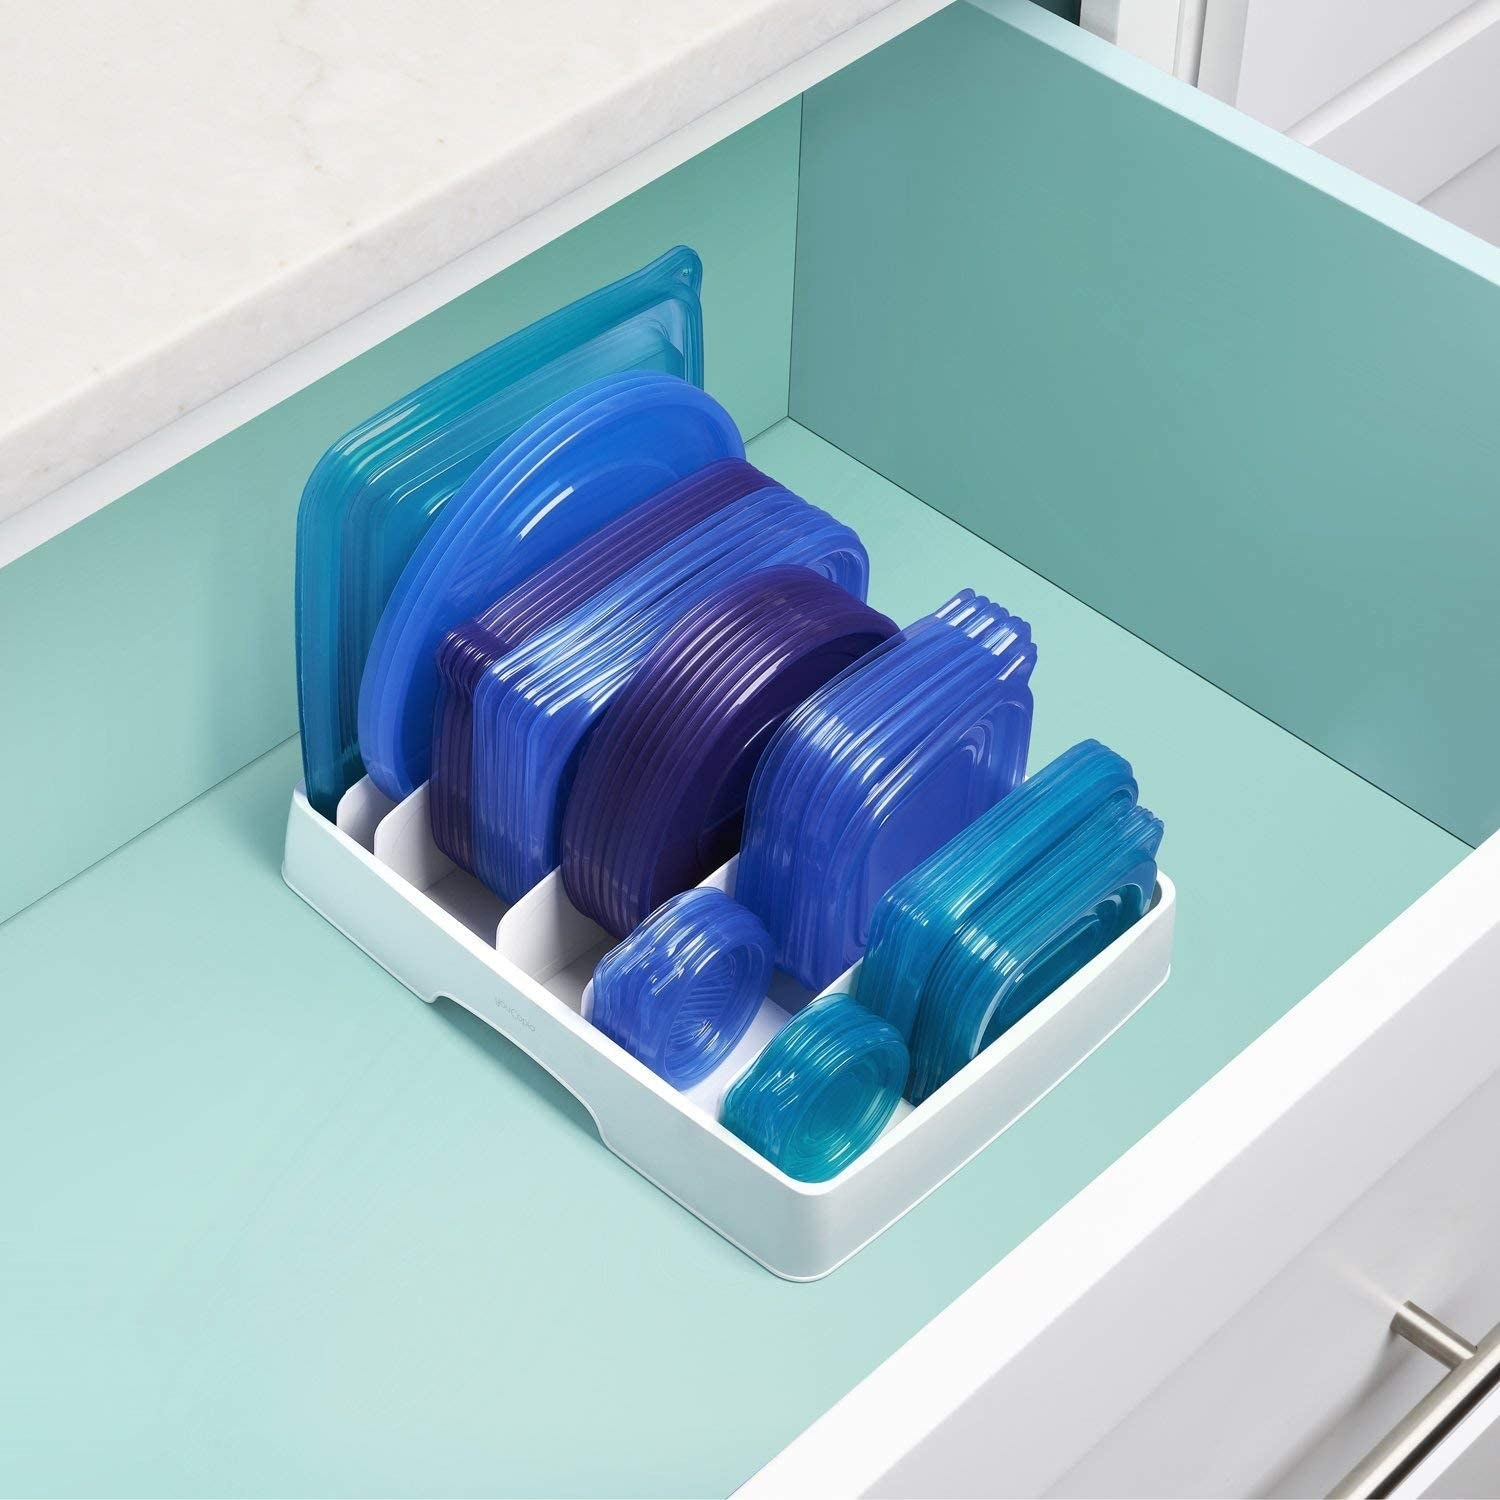 tupperware organizer in a drawer